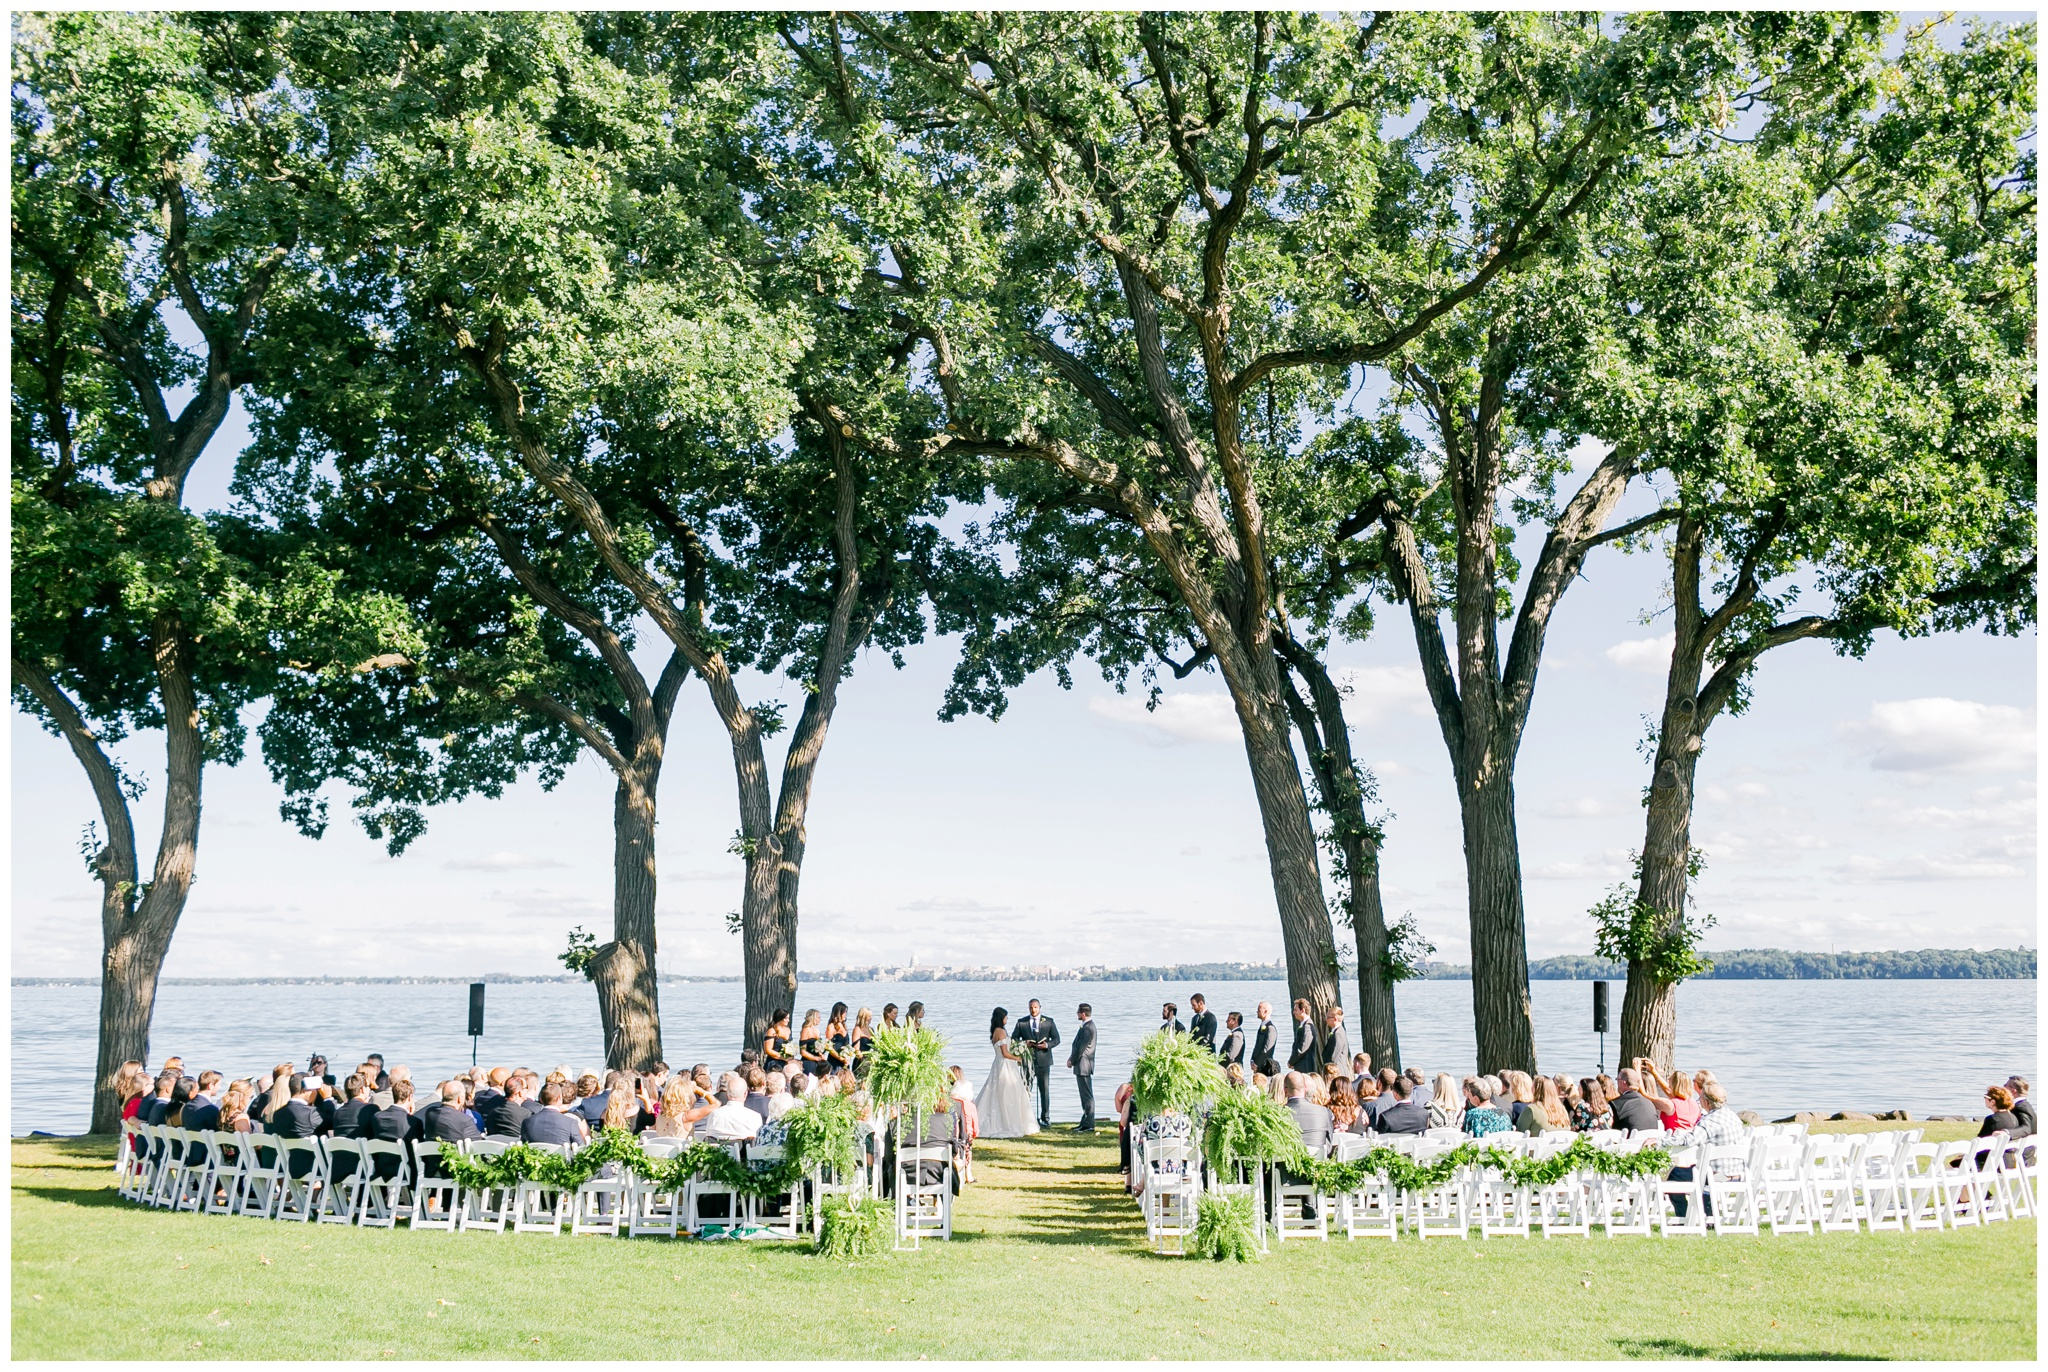 bishops_bay_country_club_wedding_middleton_wisconsin_caynay_photo_4712.jpg